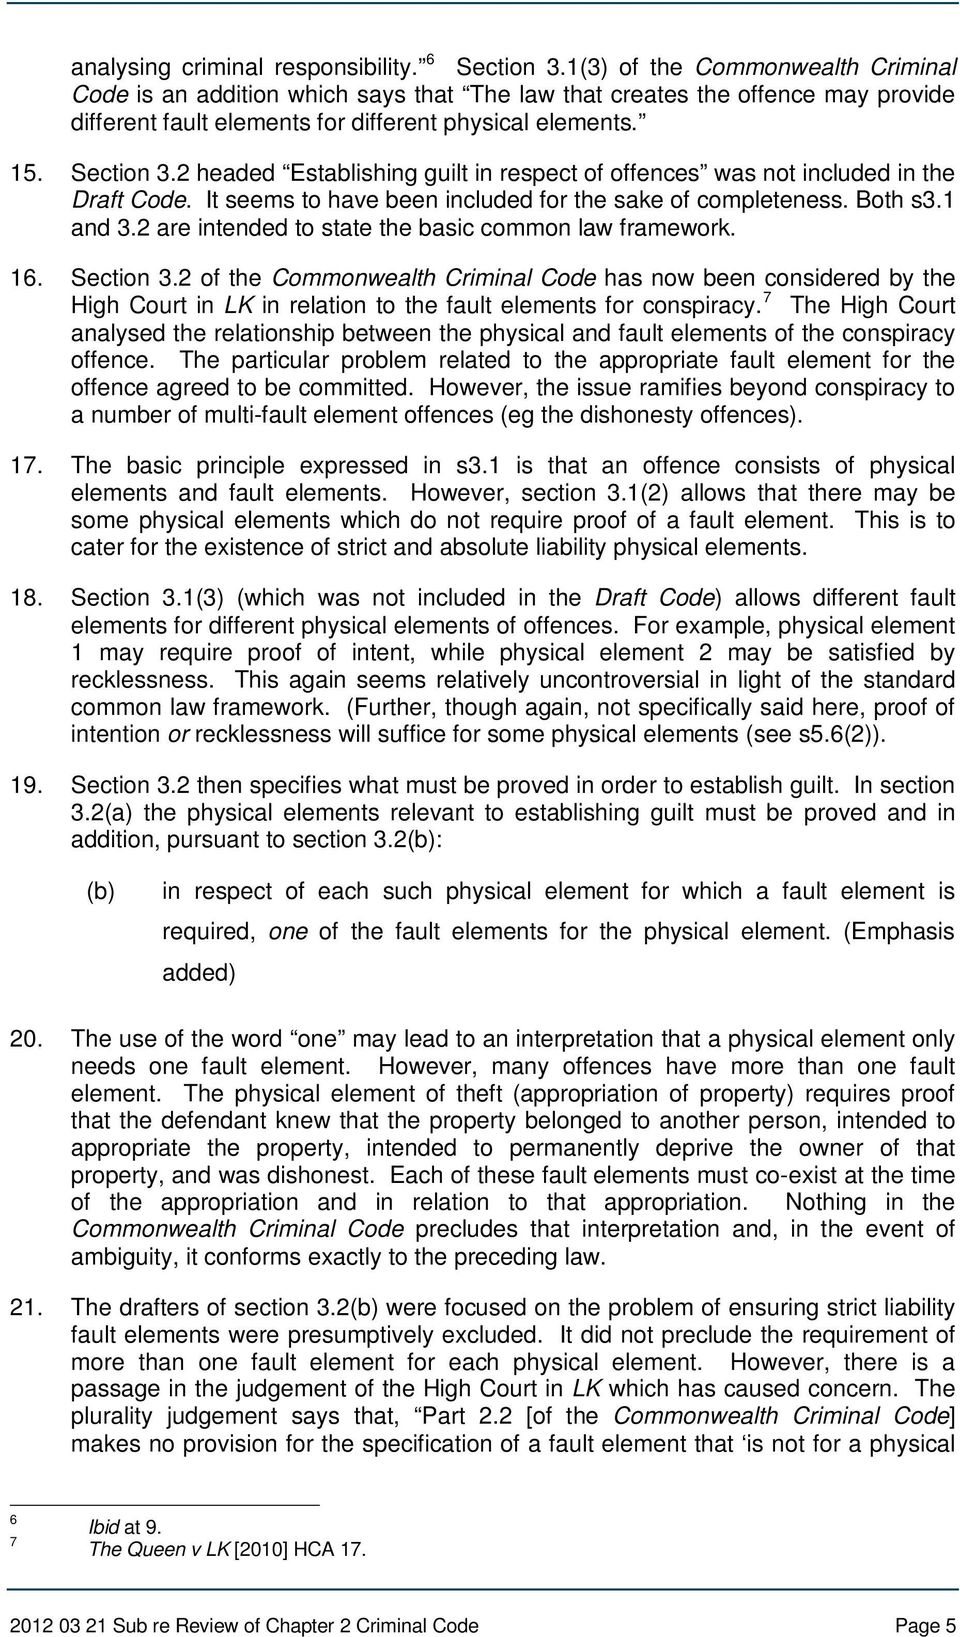 2 headed Establishing guilt in respect of offences was not included in the Draft Code. It seems to have been included for the sake of completeness. Both s3.1 and 3.